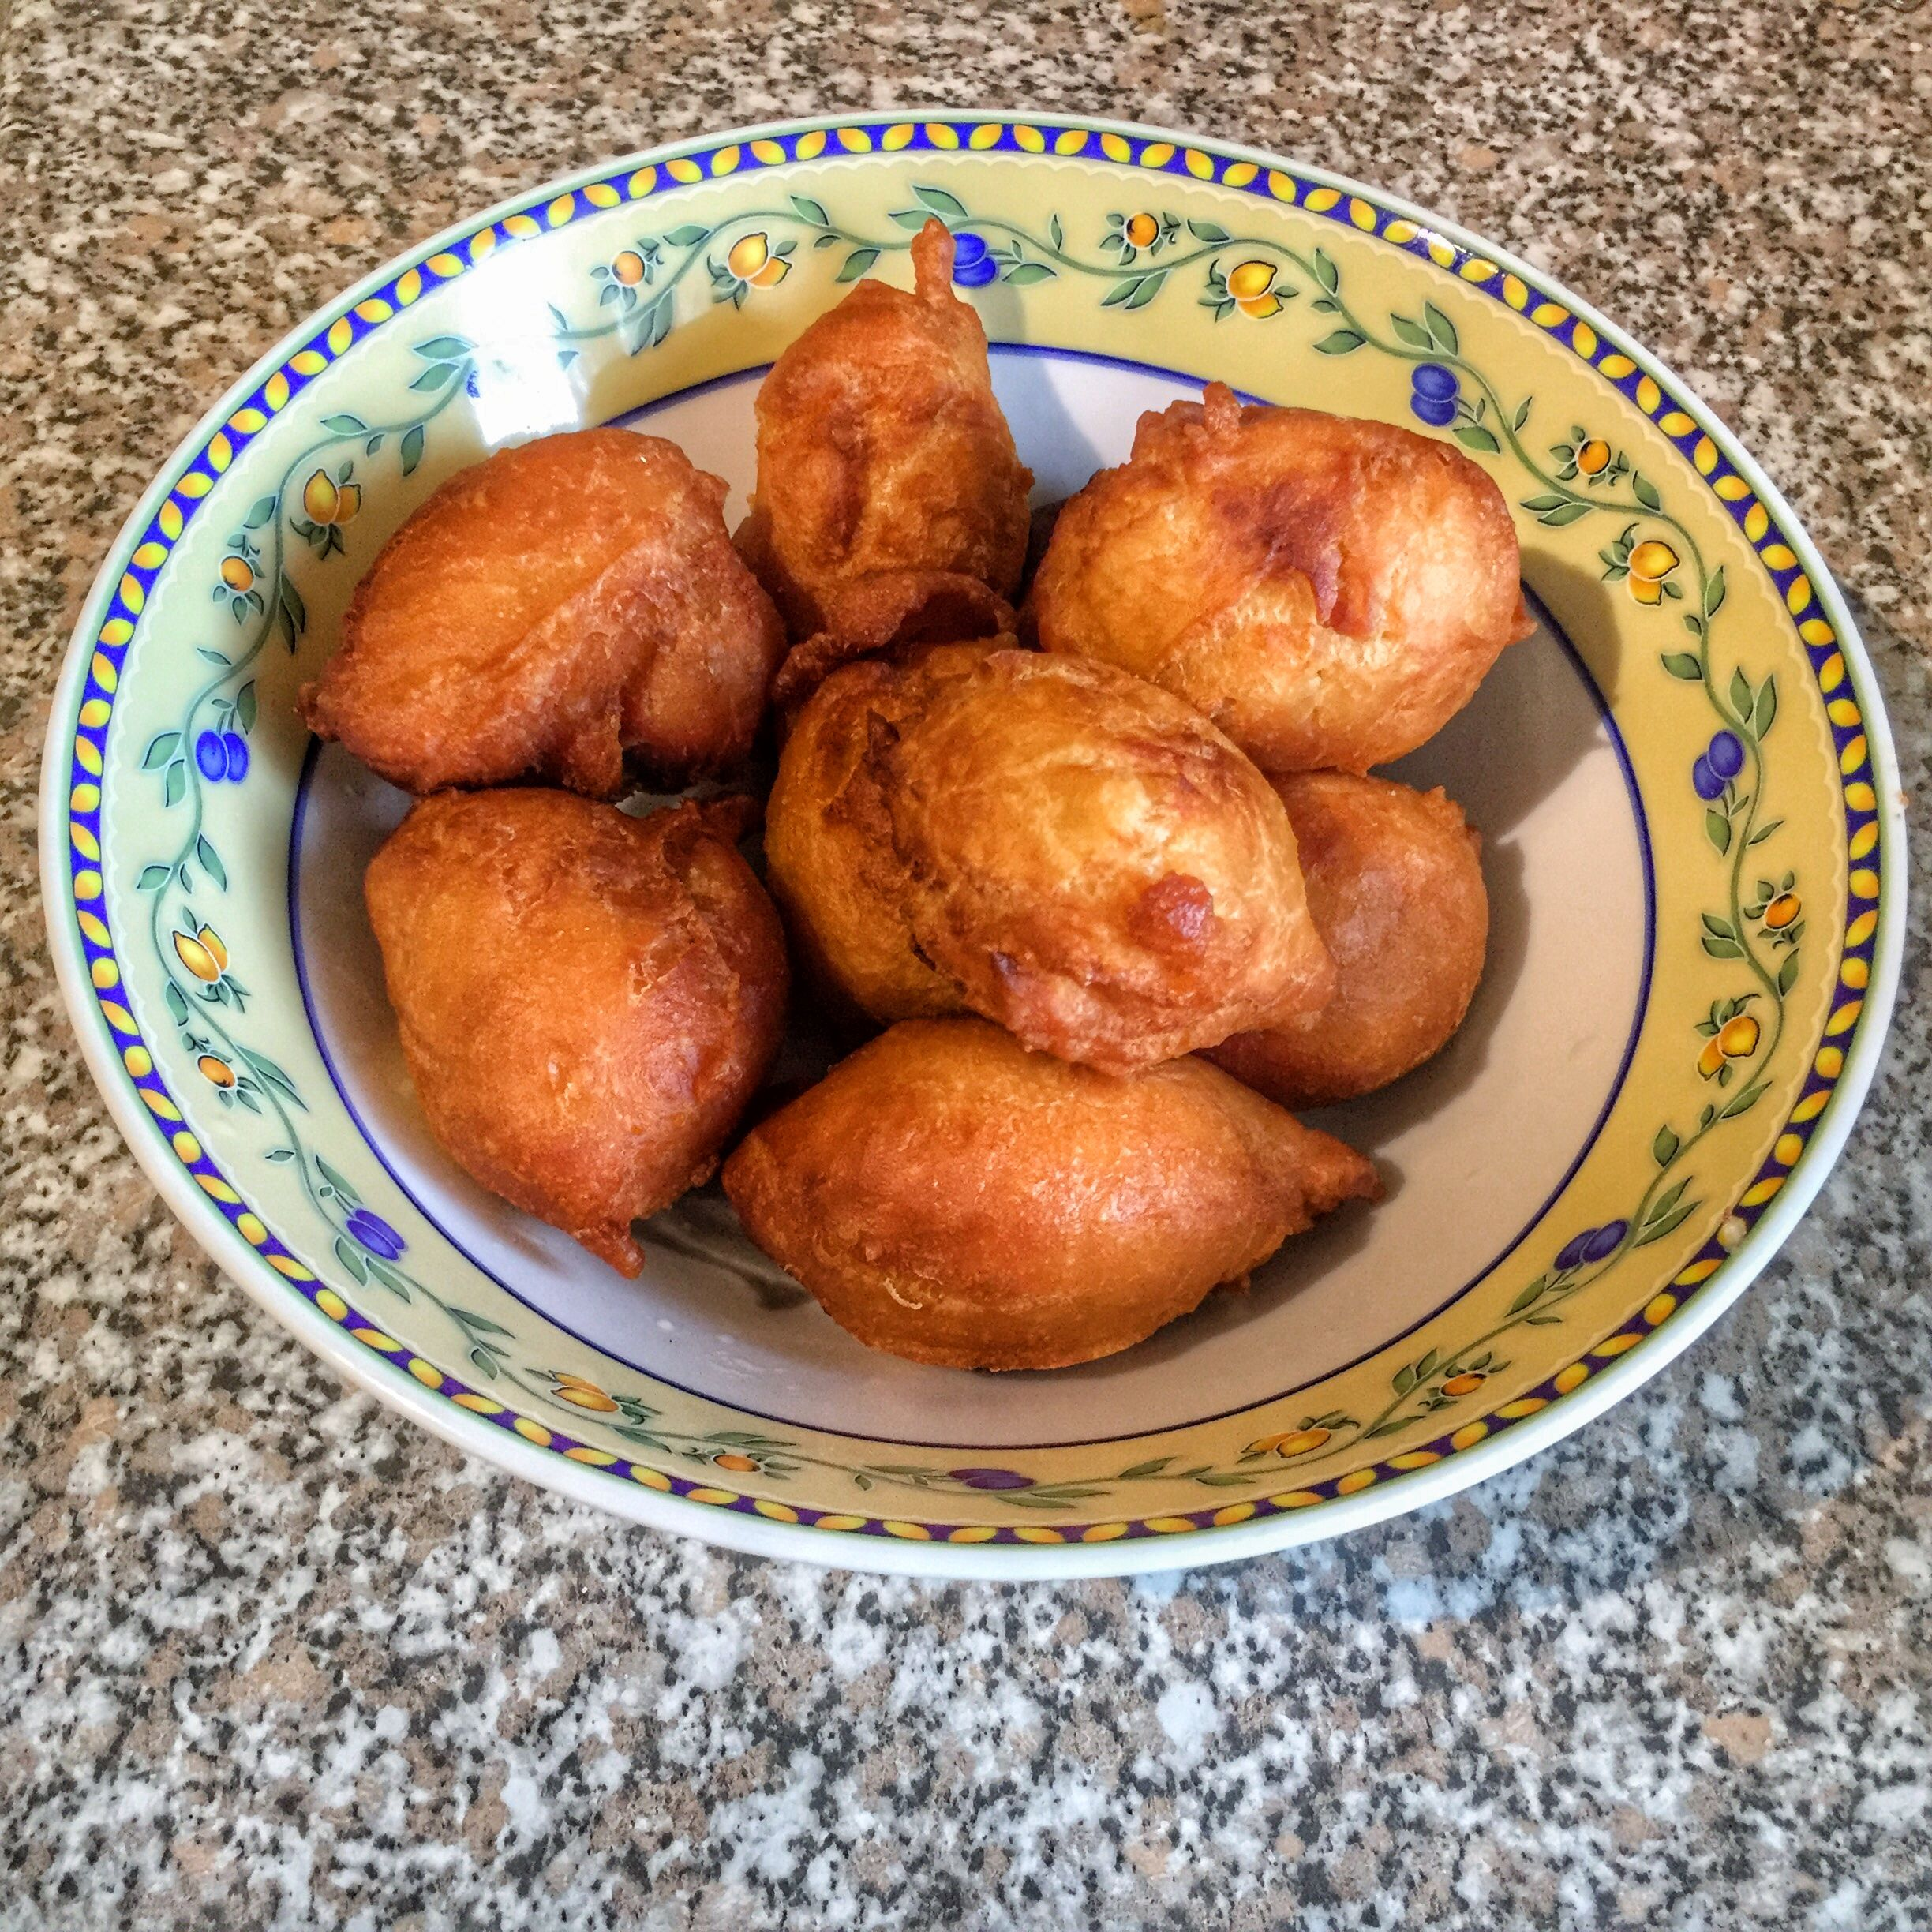 Zambian fritters locally called vitumbuwa best for brunch or zambian fritters locally called vitumbuwa best for brunch or snacking ingredients 1 cup flour forumfinder Image collections